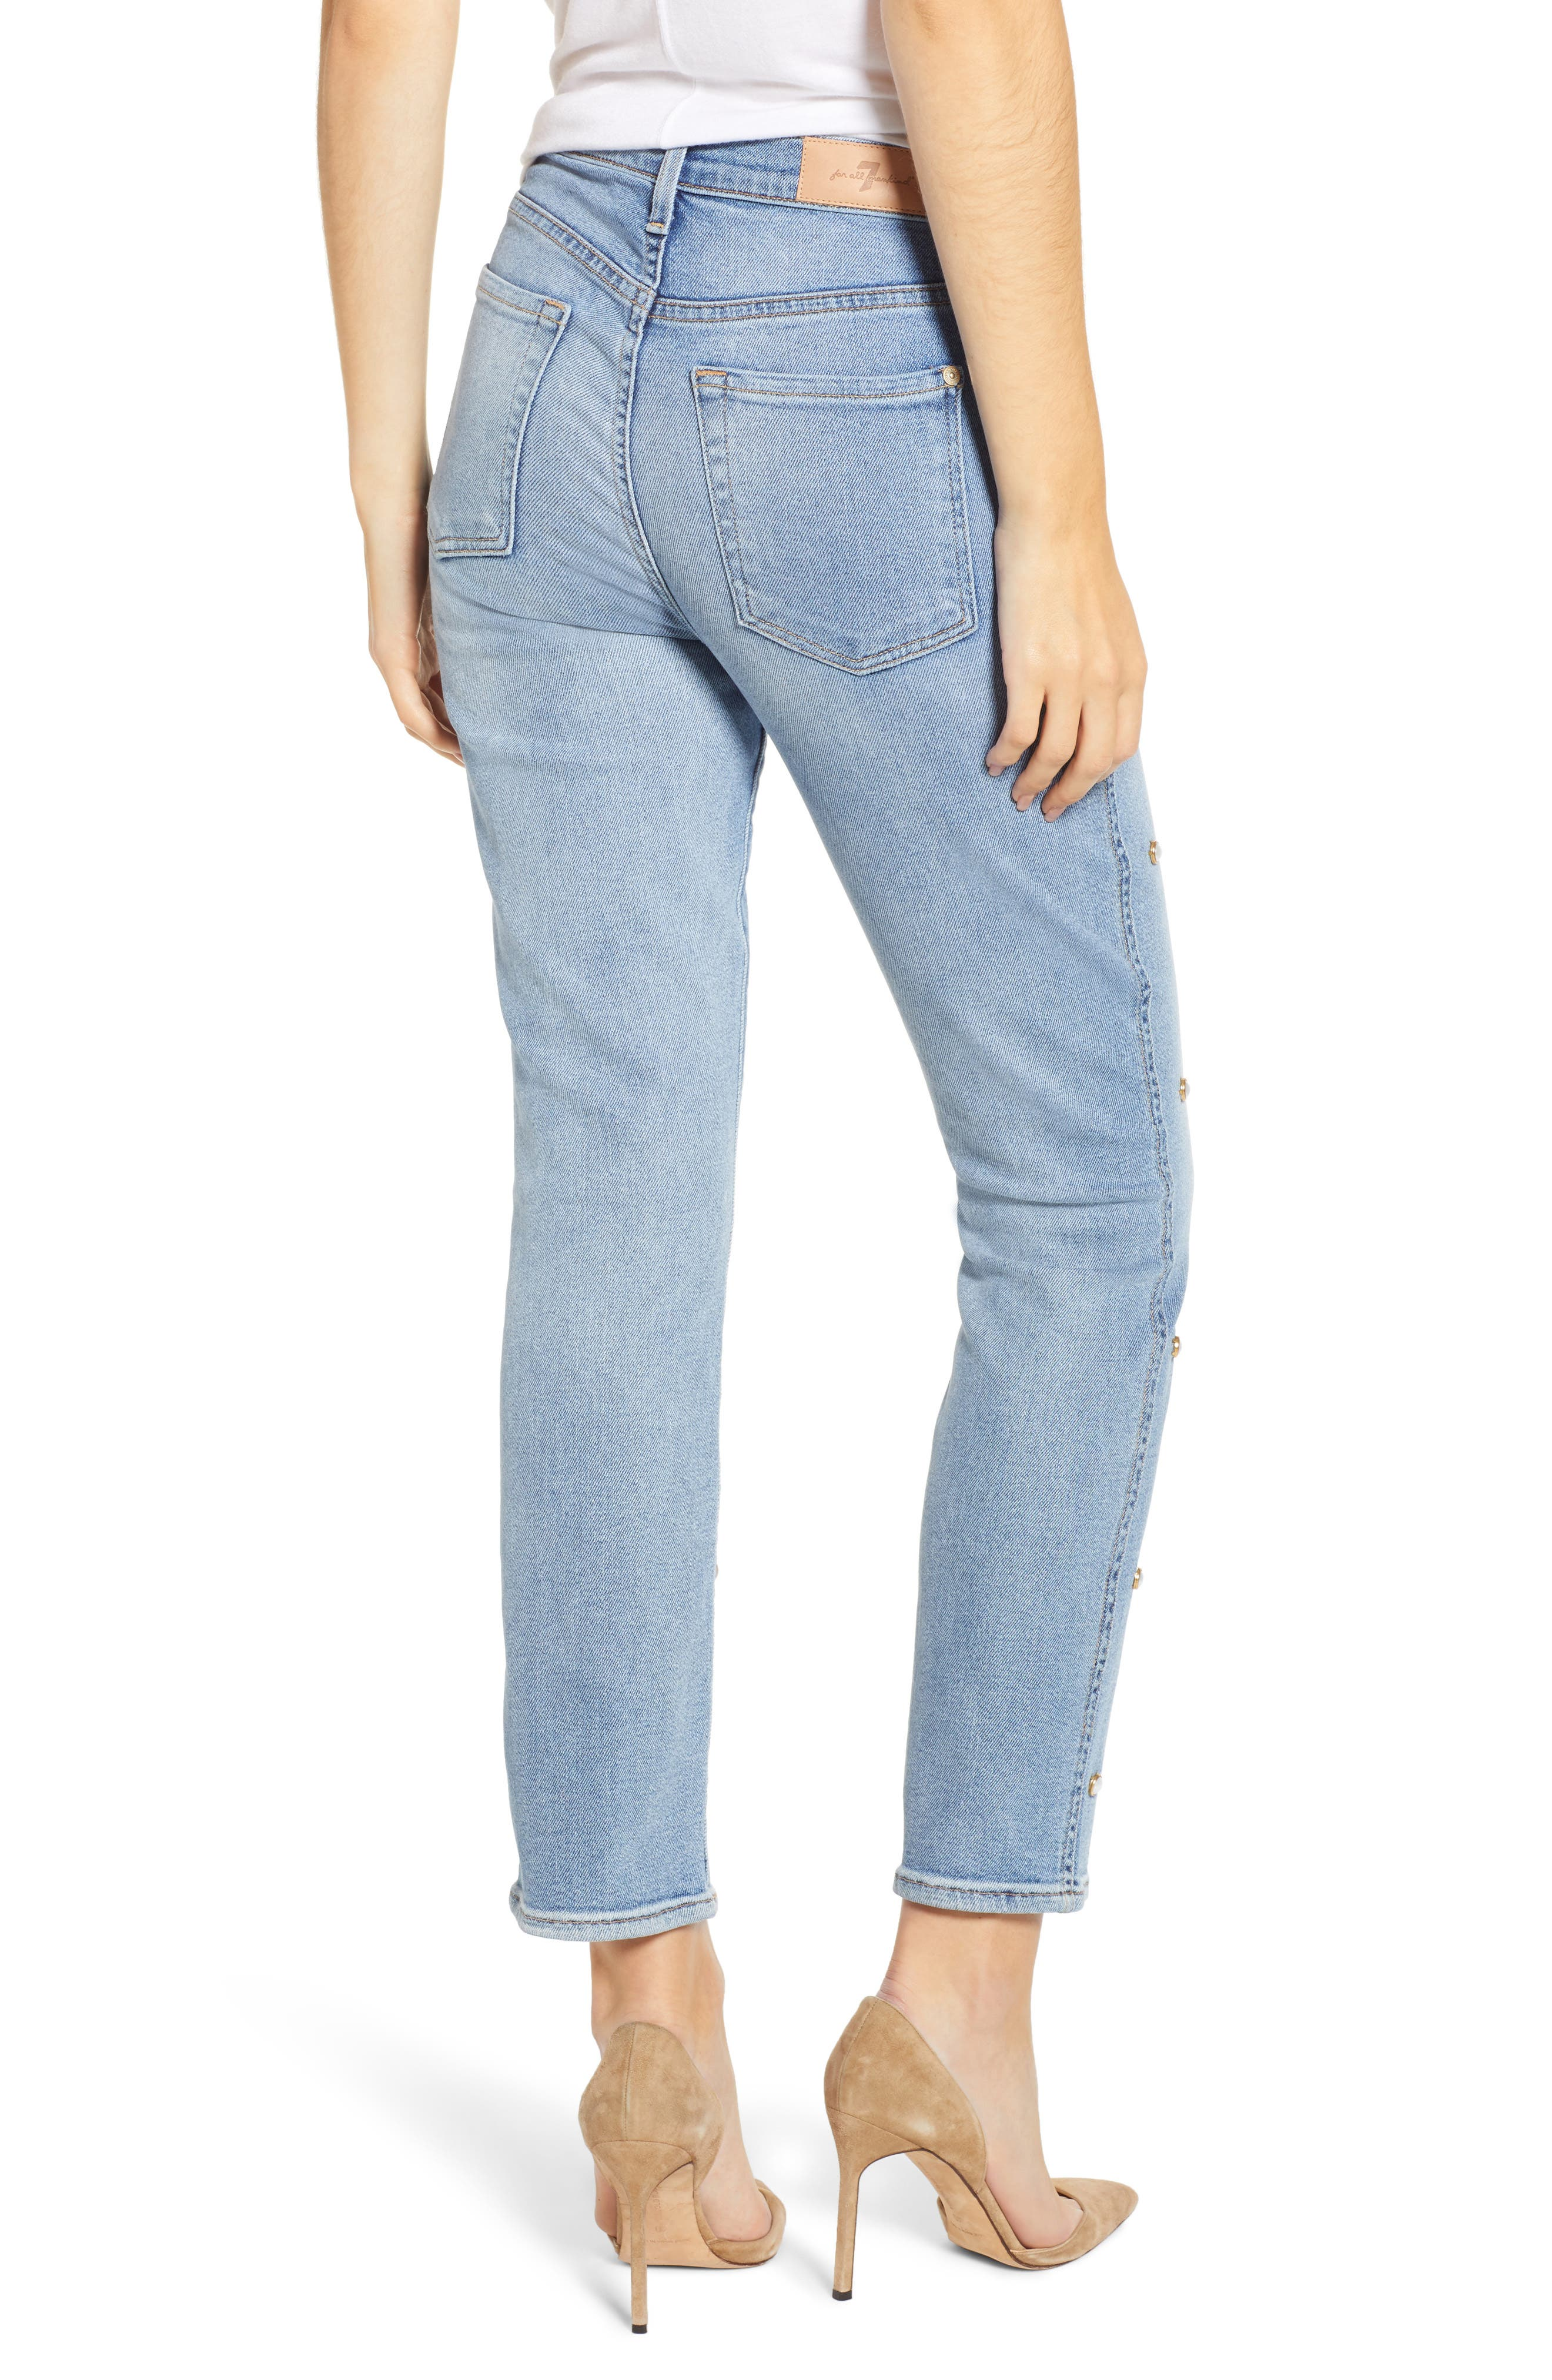 Edie Faux Pearl Detail Ankle Jeans,                             Alternate thumbnail 2, color,                             LUXE VINTAGE FLORA